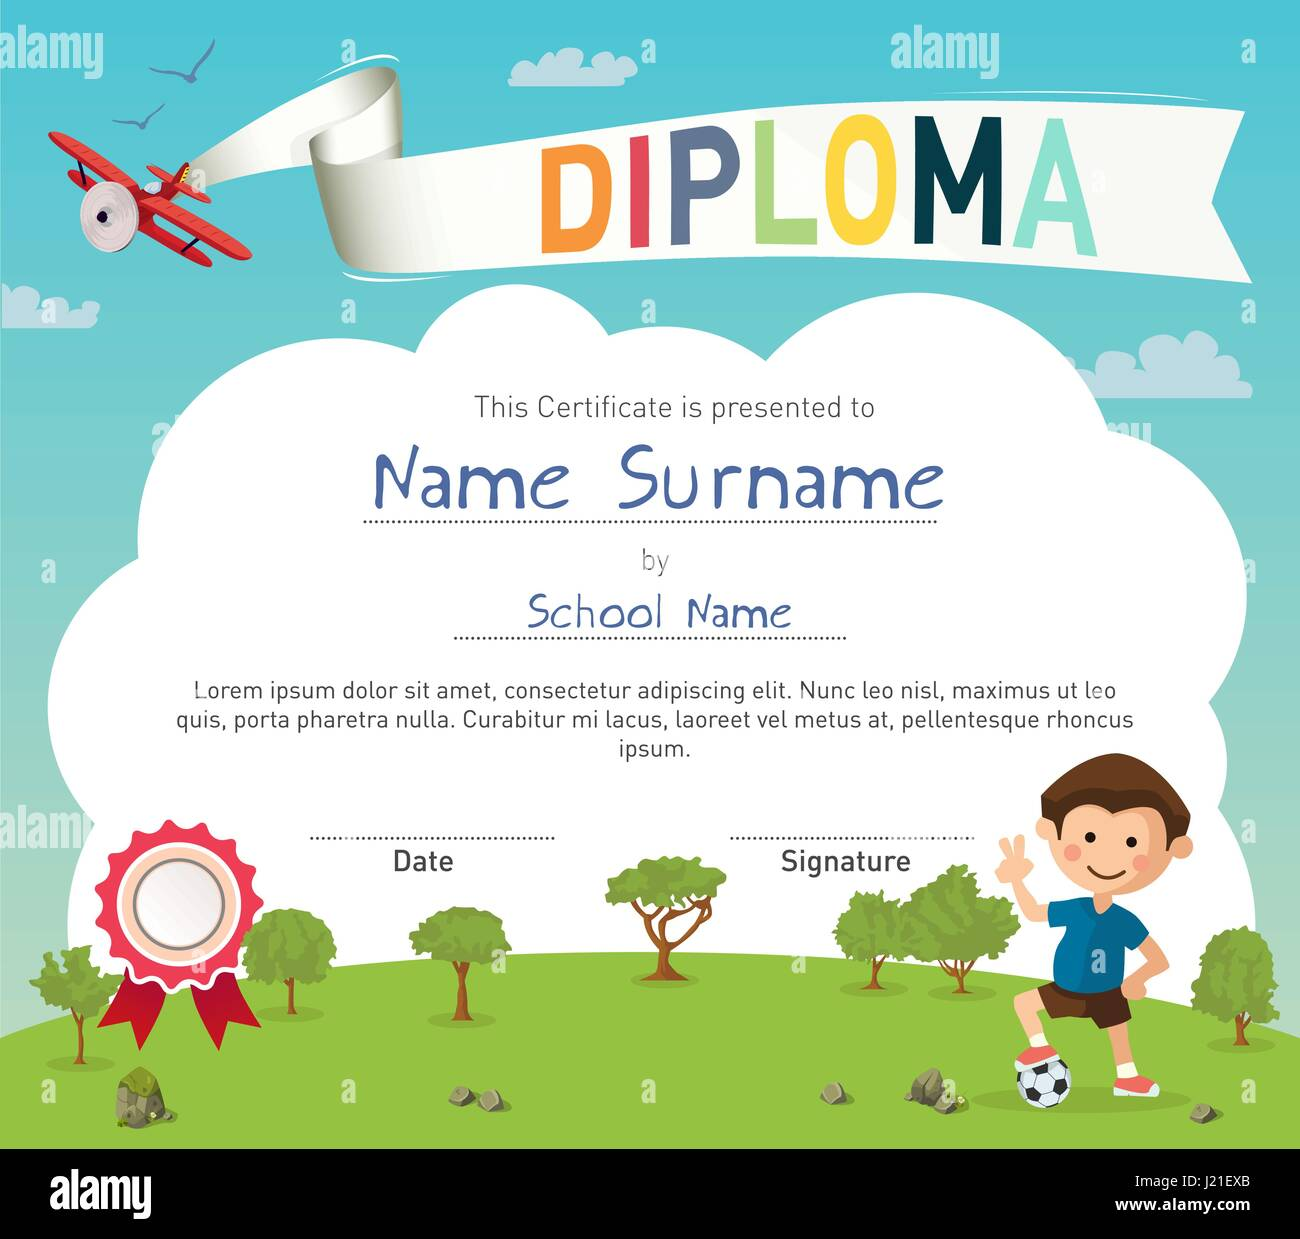 Certificate Diploma Completion Vector Design Stockfotos ...